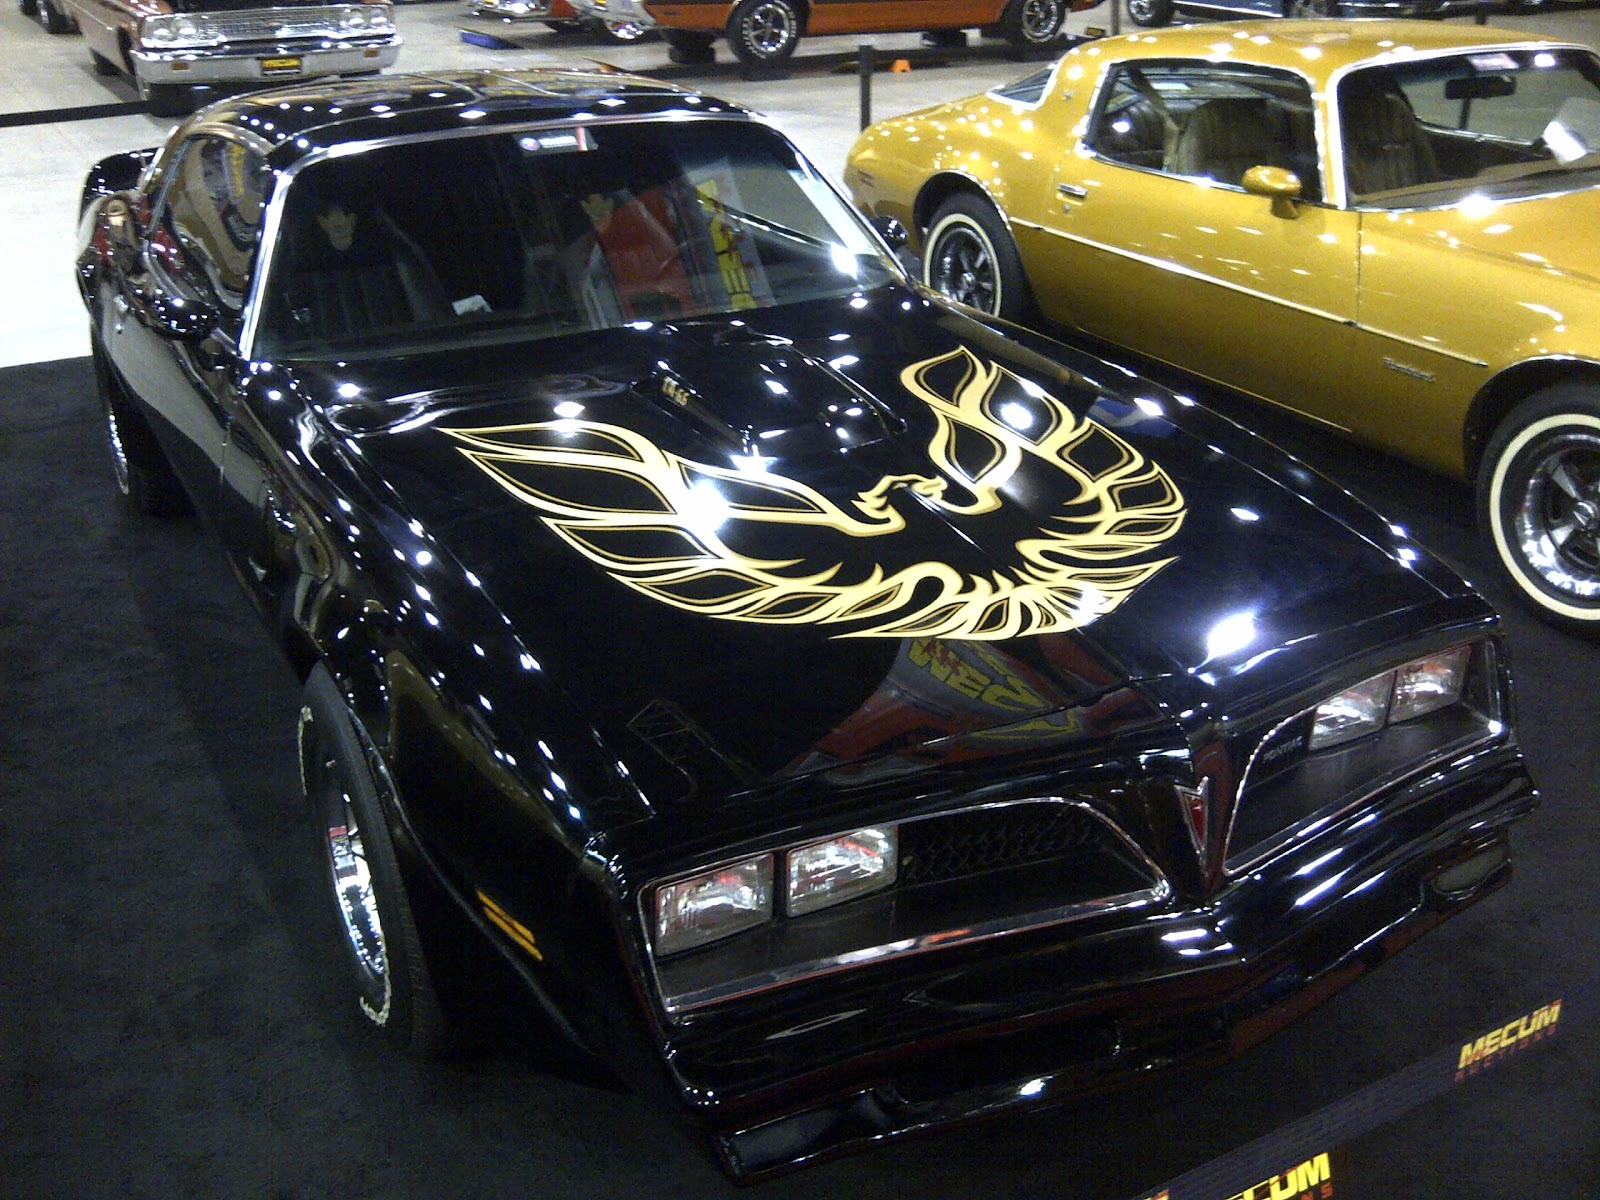 Smokey and the bandit car